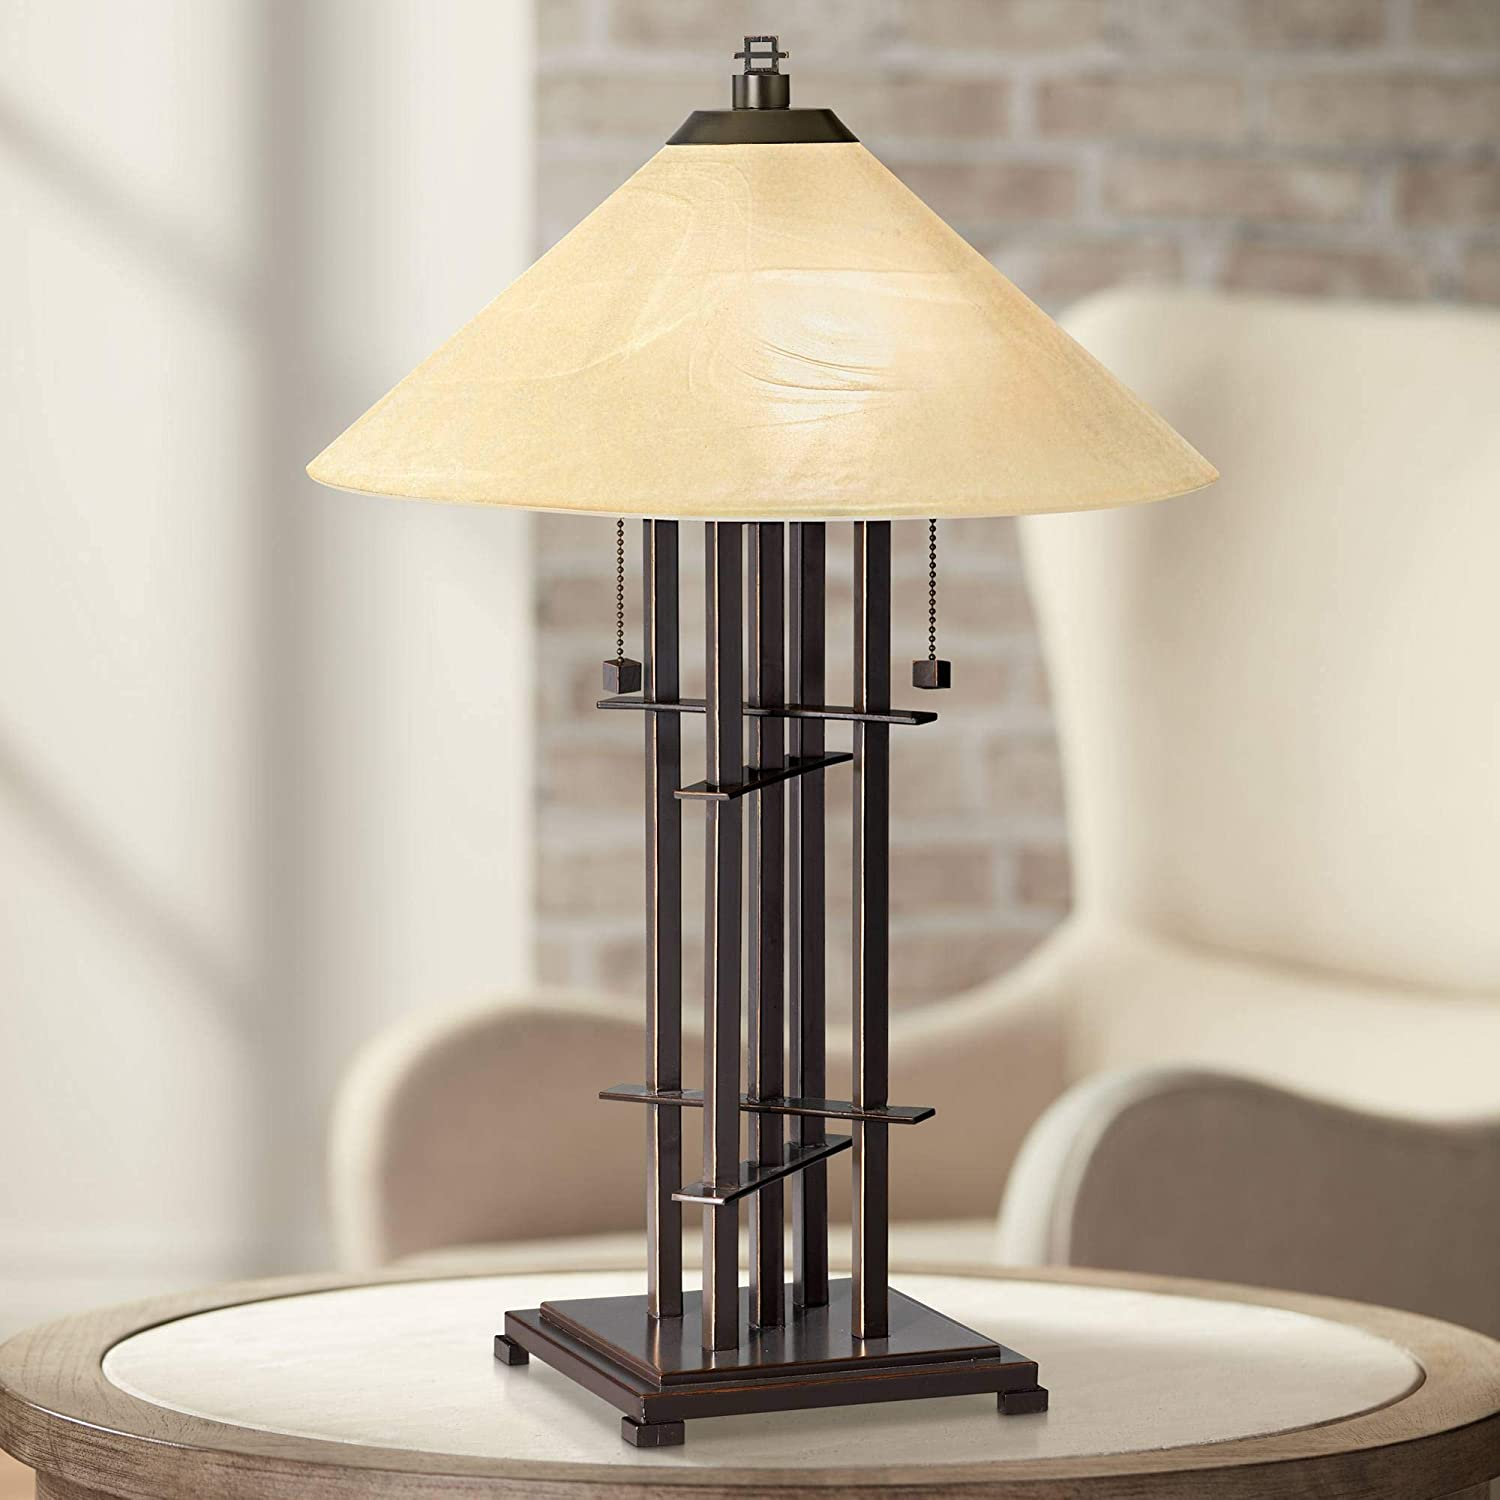 Metro Collection Planes 'n' Posts Art Glass Table Lamp